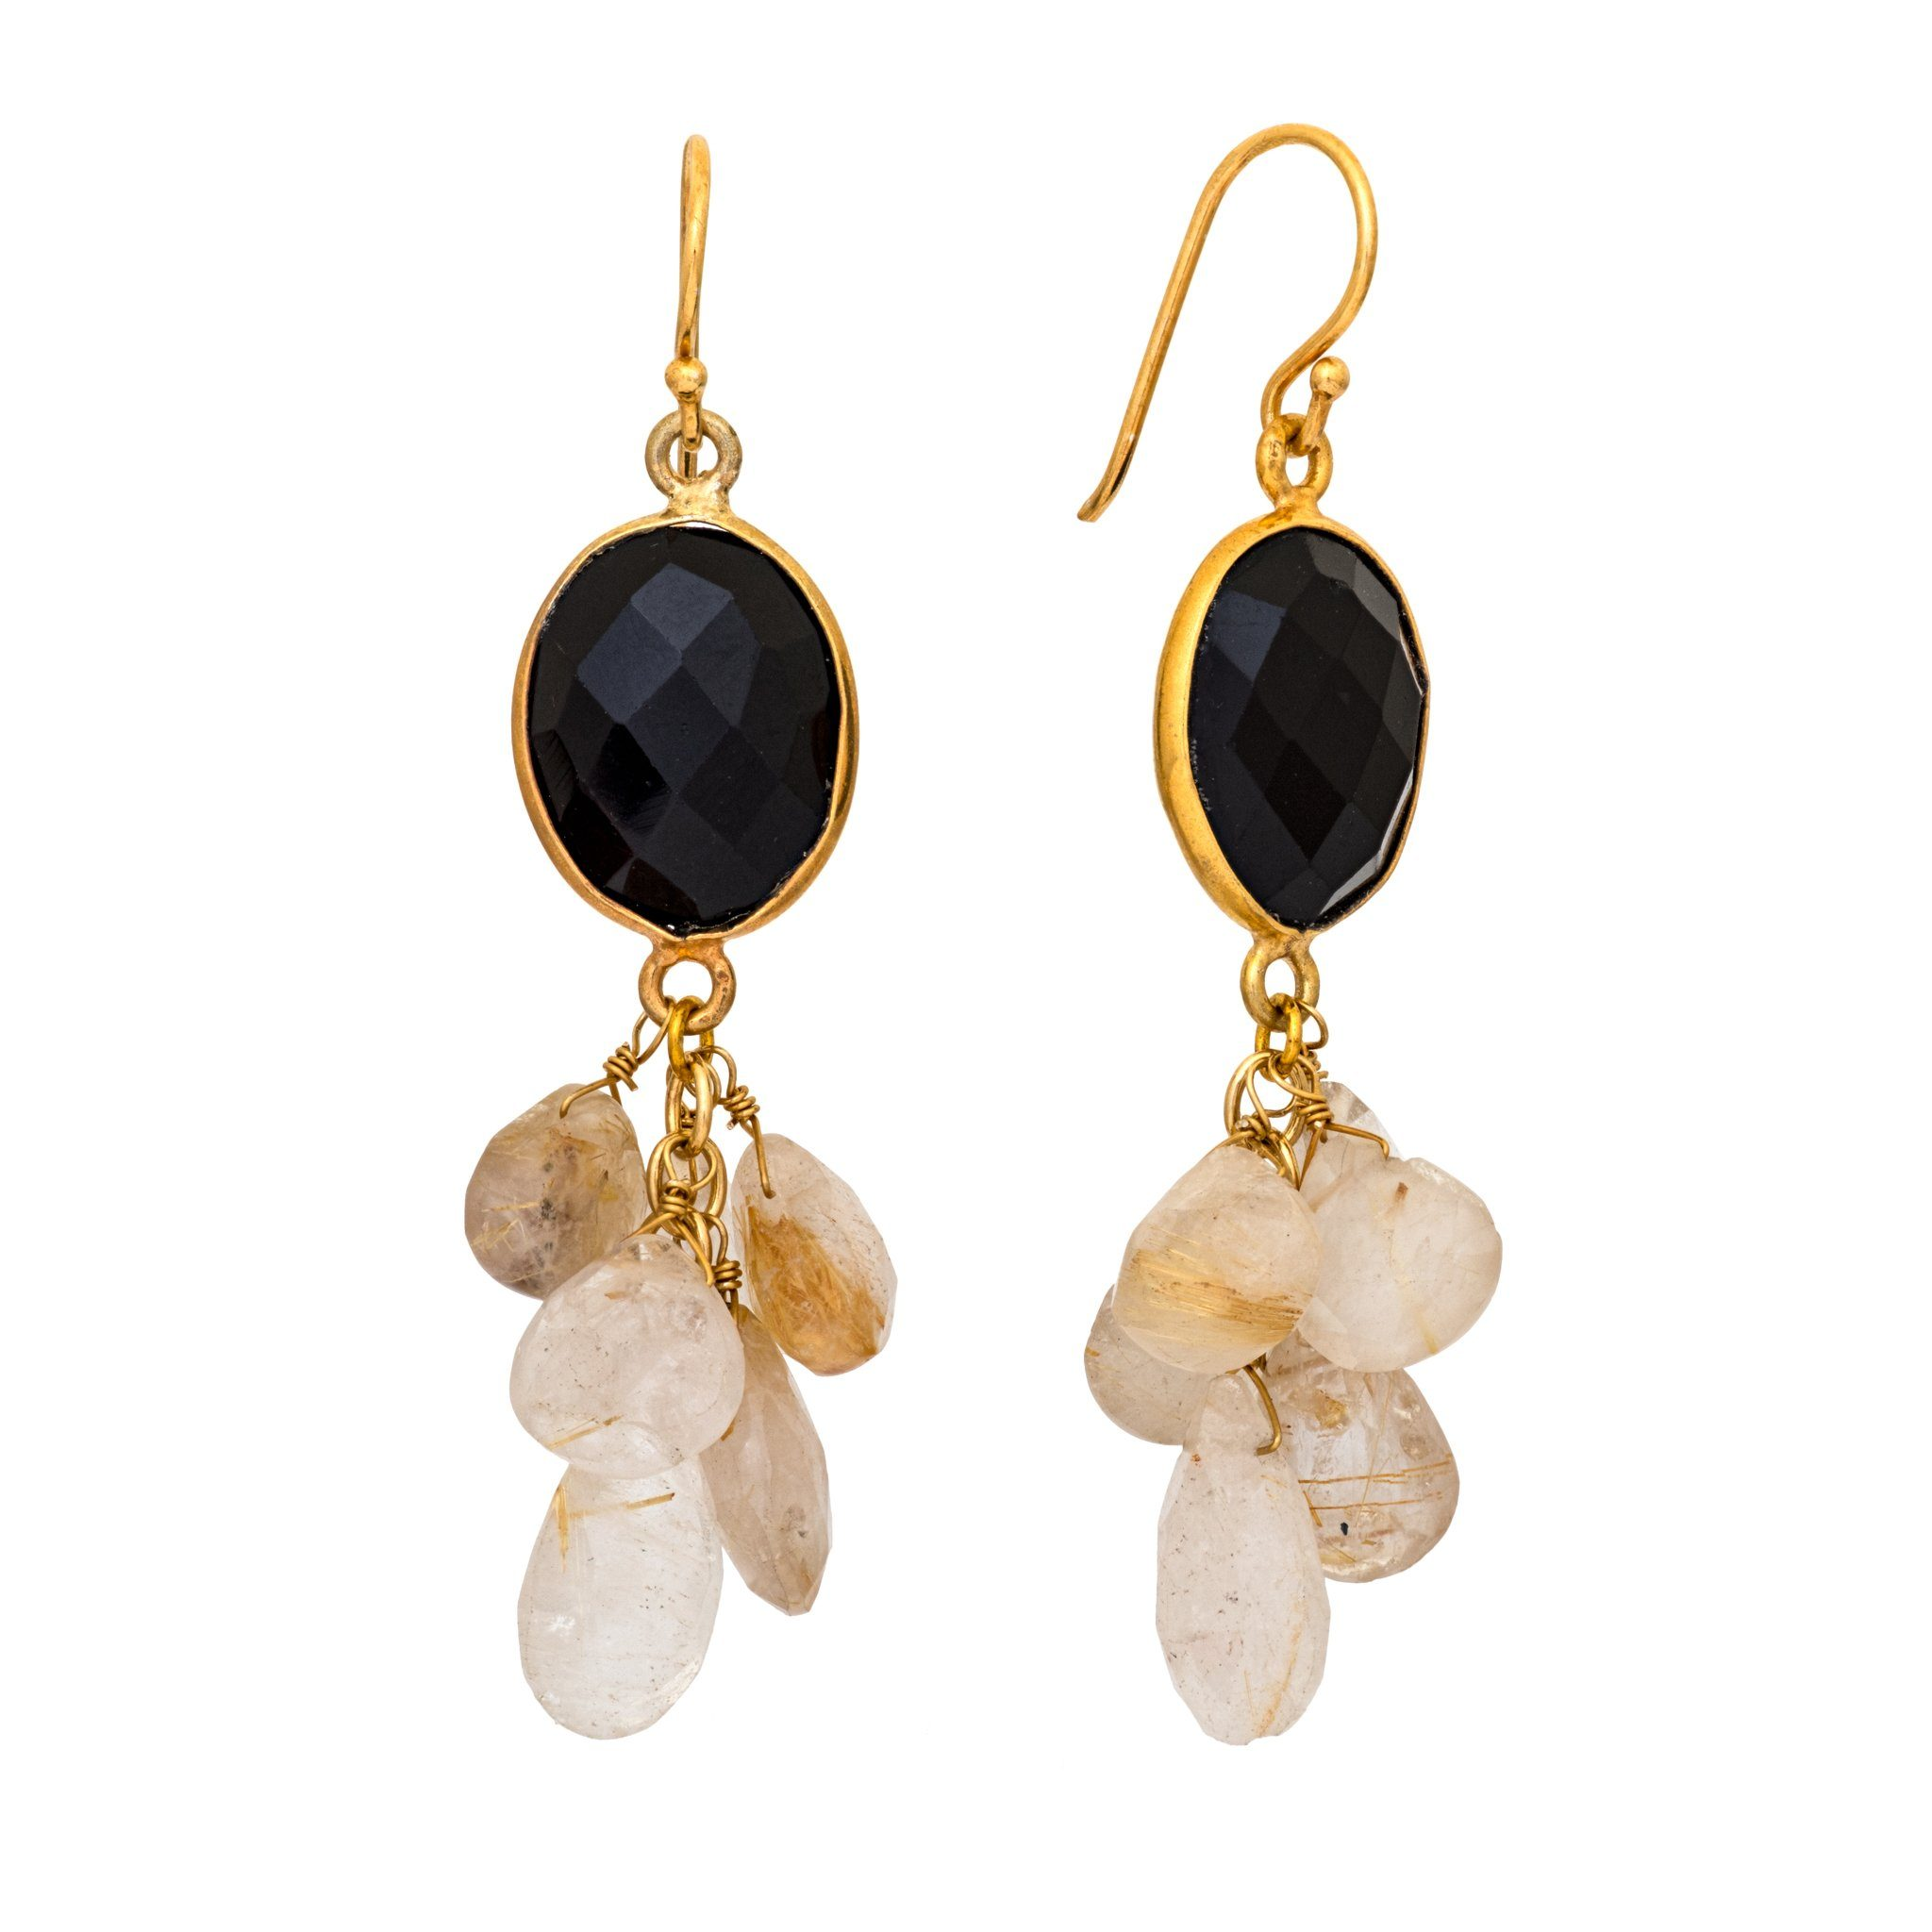 LUZ black onyx and rutile cluster earrings